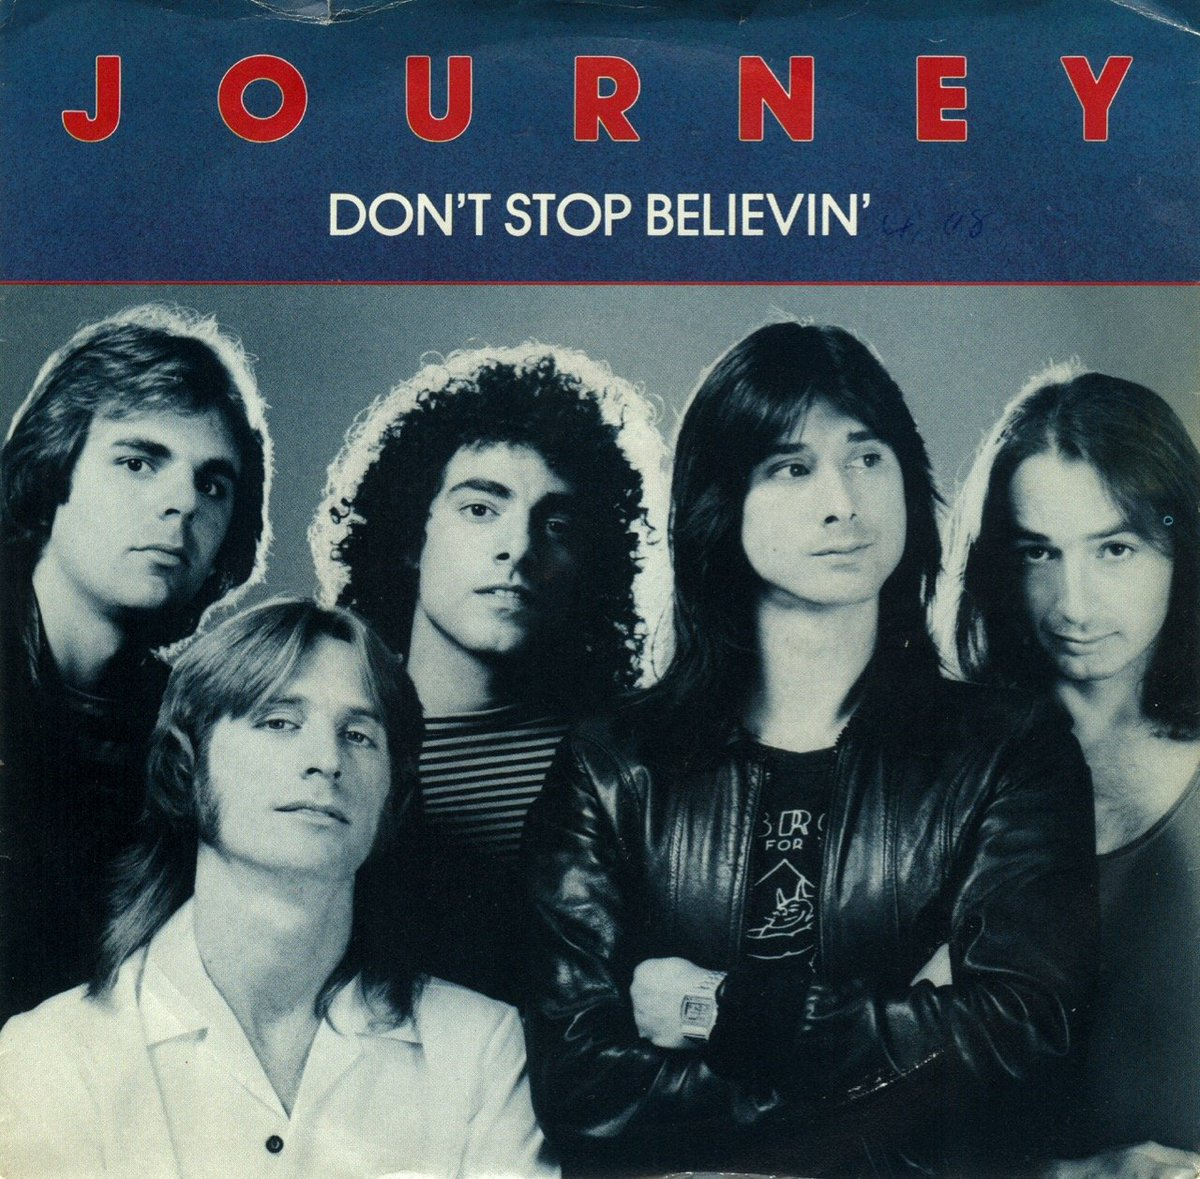 """Journey's """"Don't Stop Believin'"""" is becoming the anthem for coronavirus survivors -- here's why:  http:// cos.lv/Z3bD50zffmi     #Journey #DontStopBelievin <br>http://pic.twitter.com/zgCMNrVhEw"""